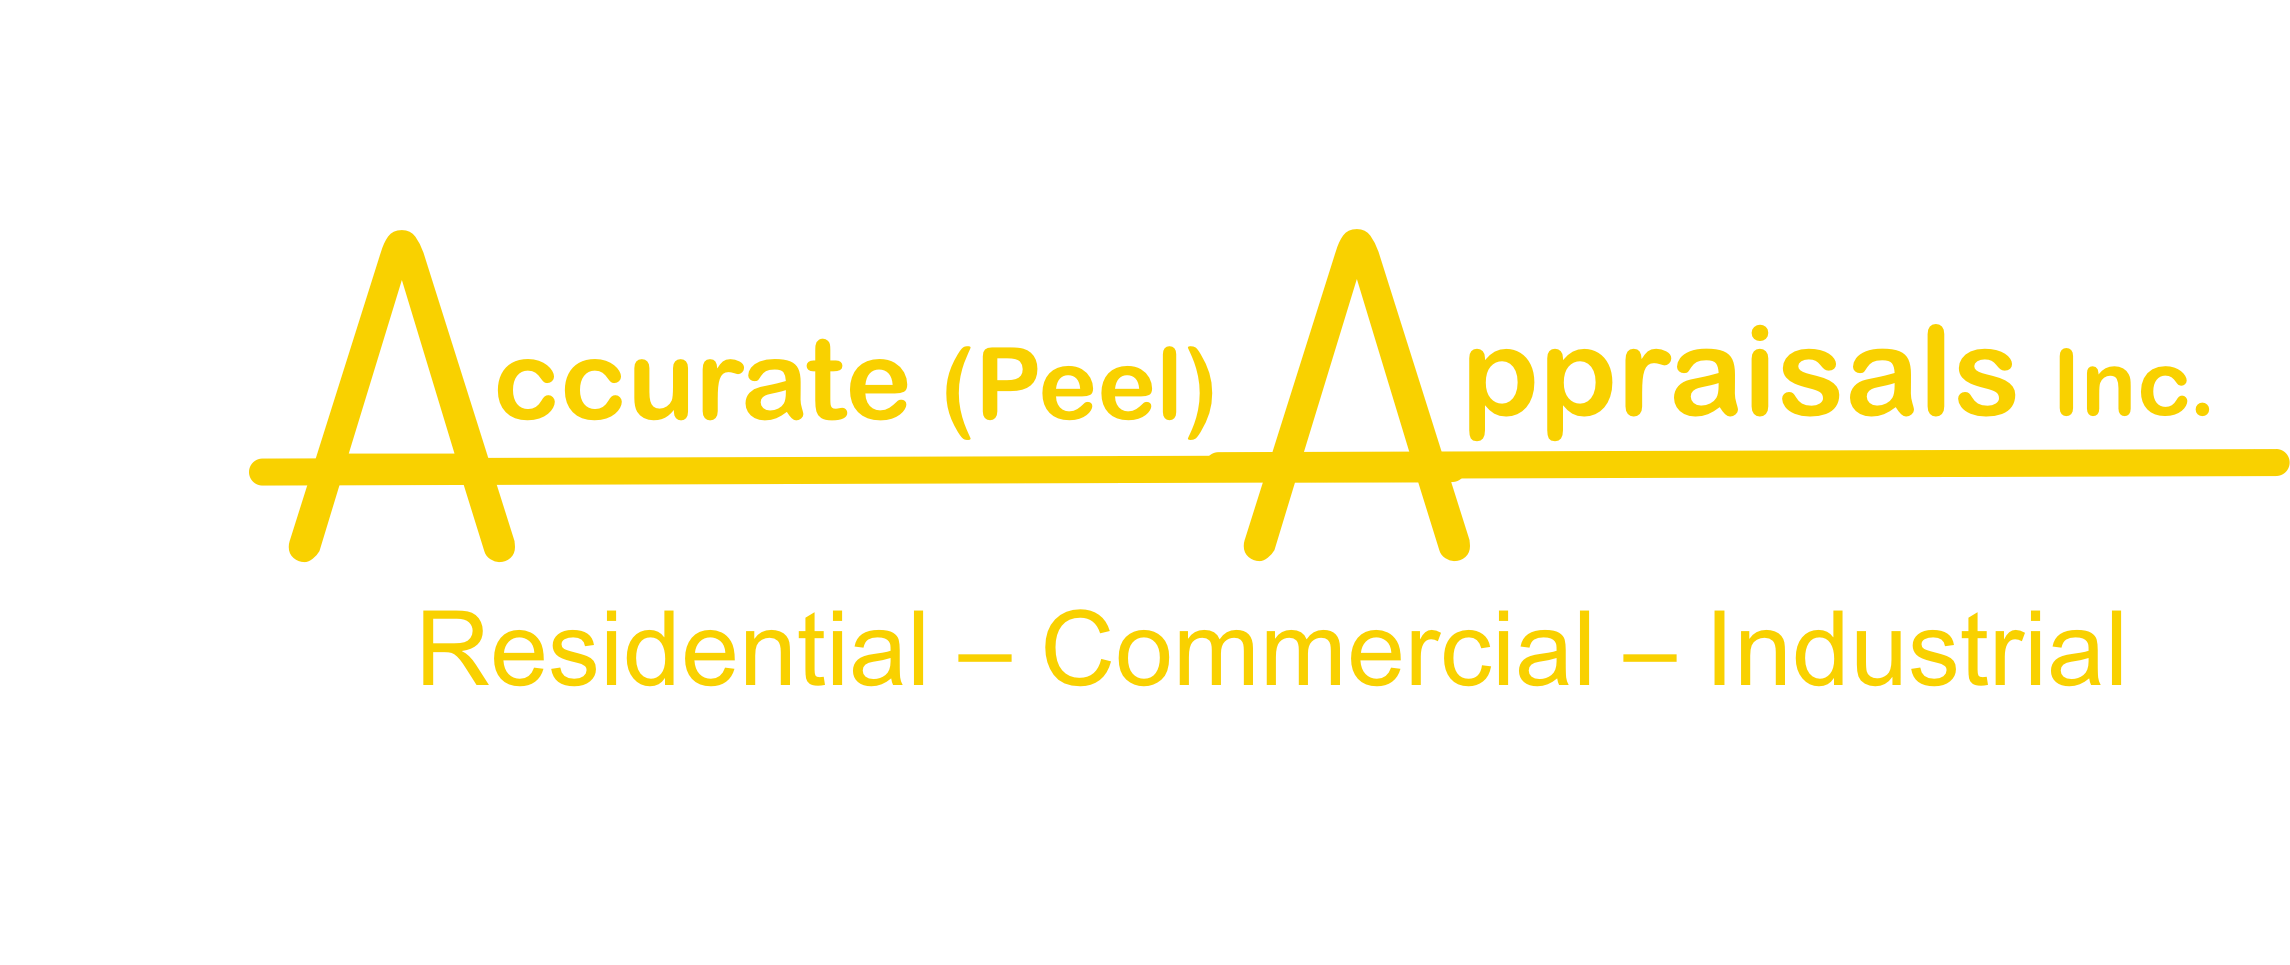 Accurate (Peel) Appraisals Inc.